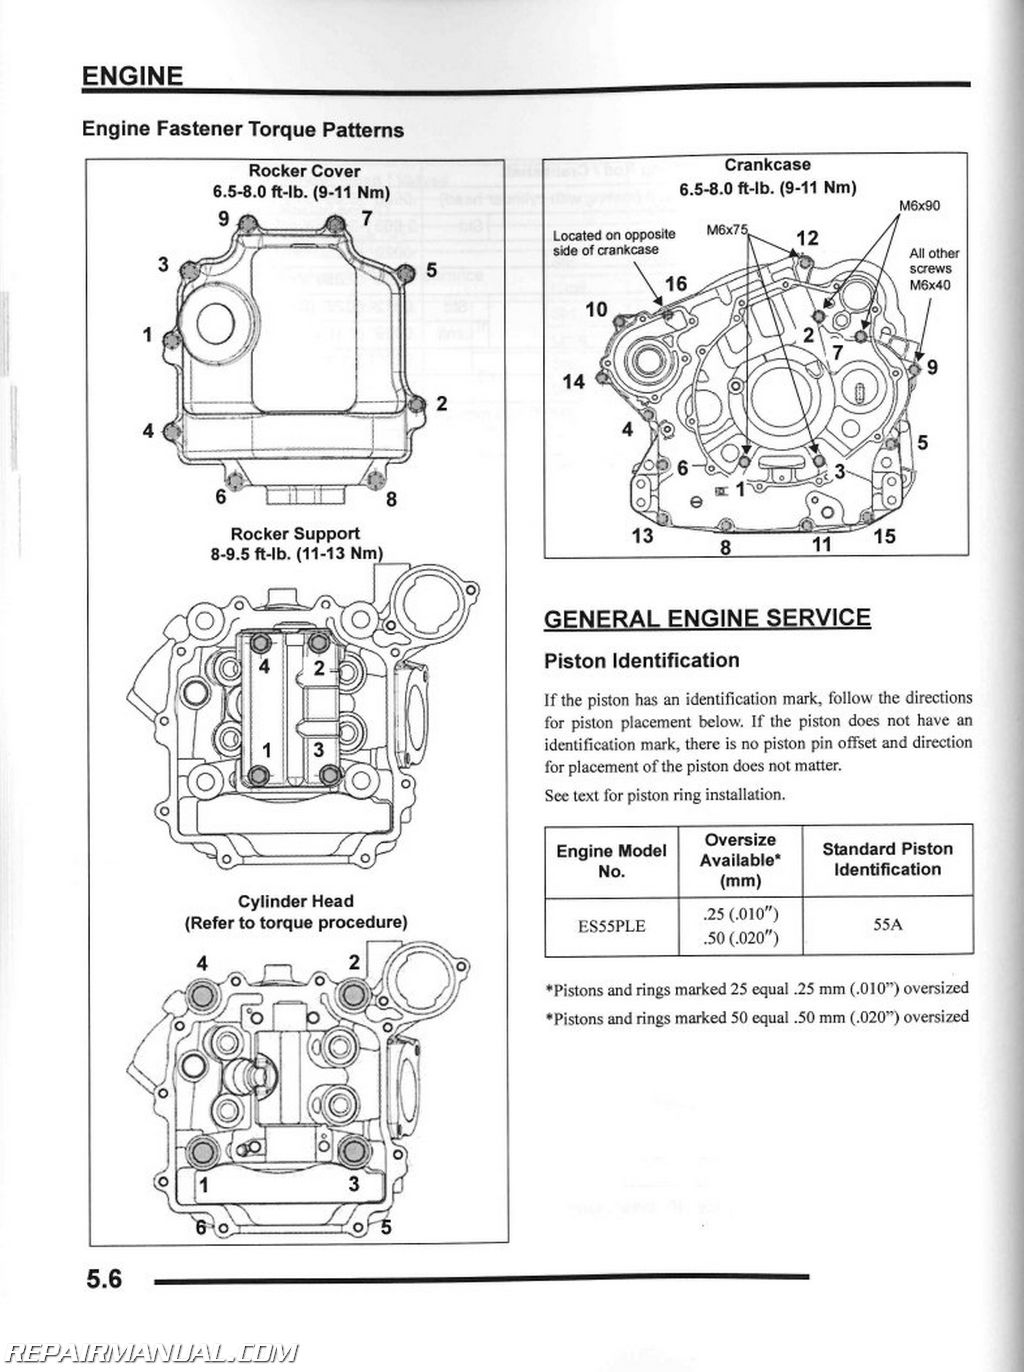 D Sportsman Mv Carb Model Help Image as well Wireingdiagram likewise Warn Winch Wiring Diagram Hd Dump Me moreover D Eltigre Ext Wiring Diagram Eltigre Ignition also D Zl Wiring Diagram Needed Zl Wiring. on polaris 500 sportsman starter wiring diagram